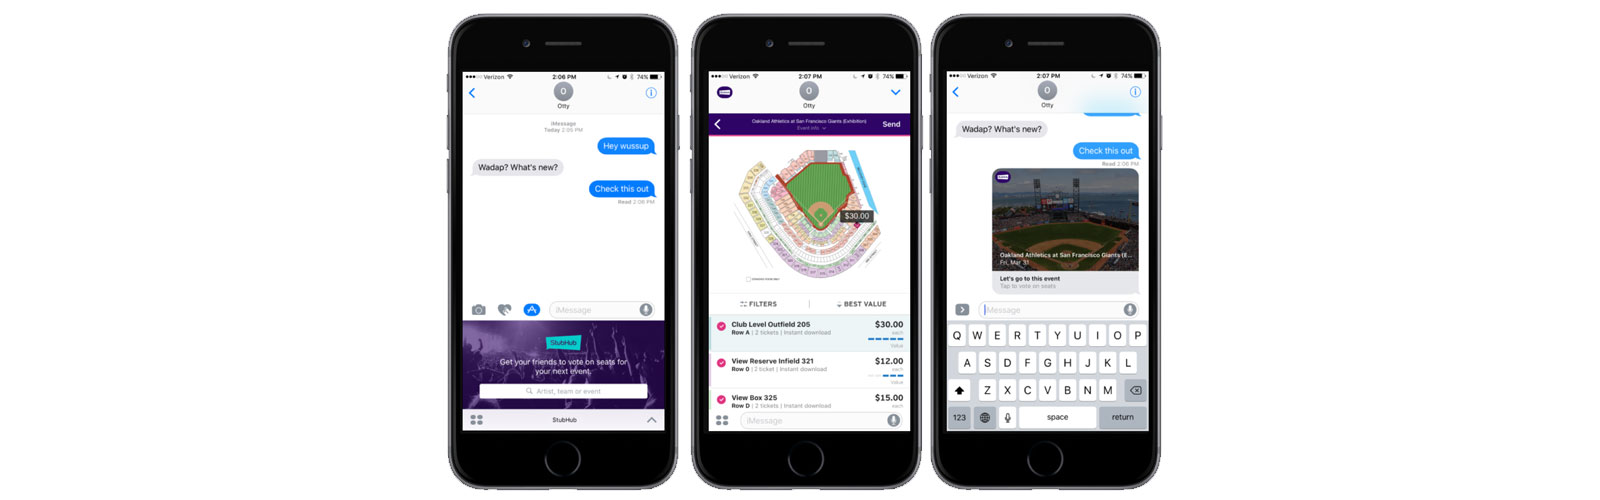 stubhub-imessage-facebook